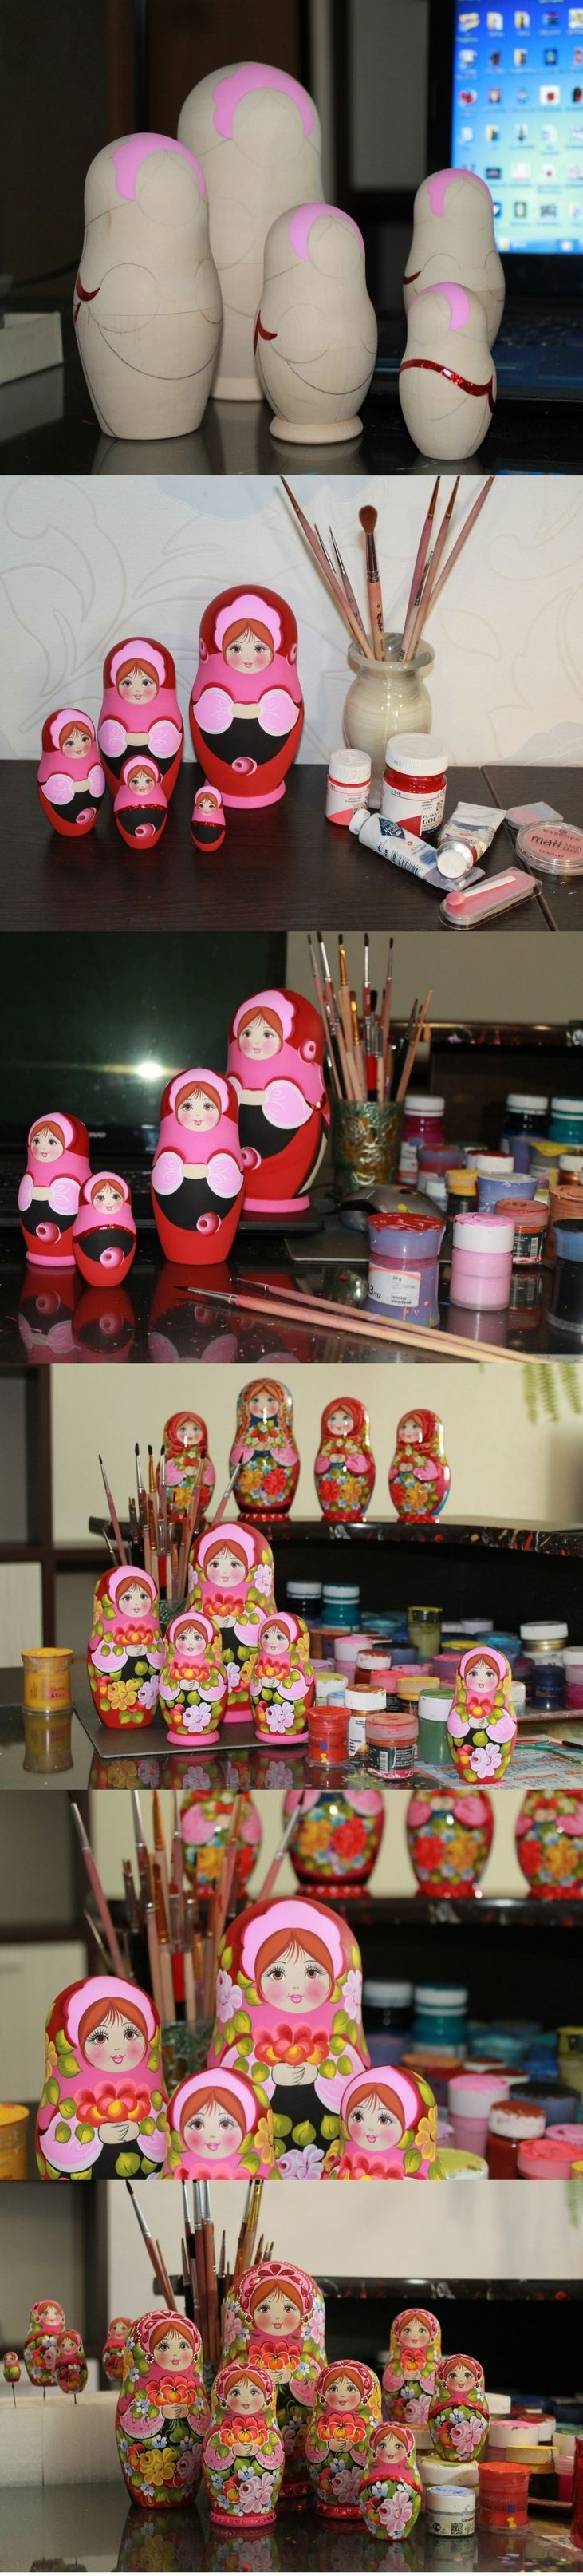 Creative process of matryoshka doll by artist Nadezhda Tihonovich, for more lovely nesting dolls visit: www.bestrussiandolls.etsy.com